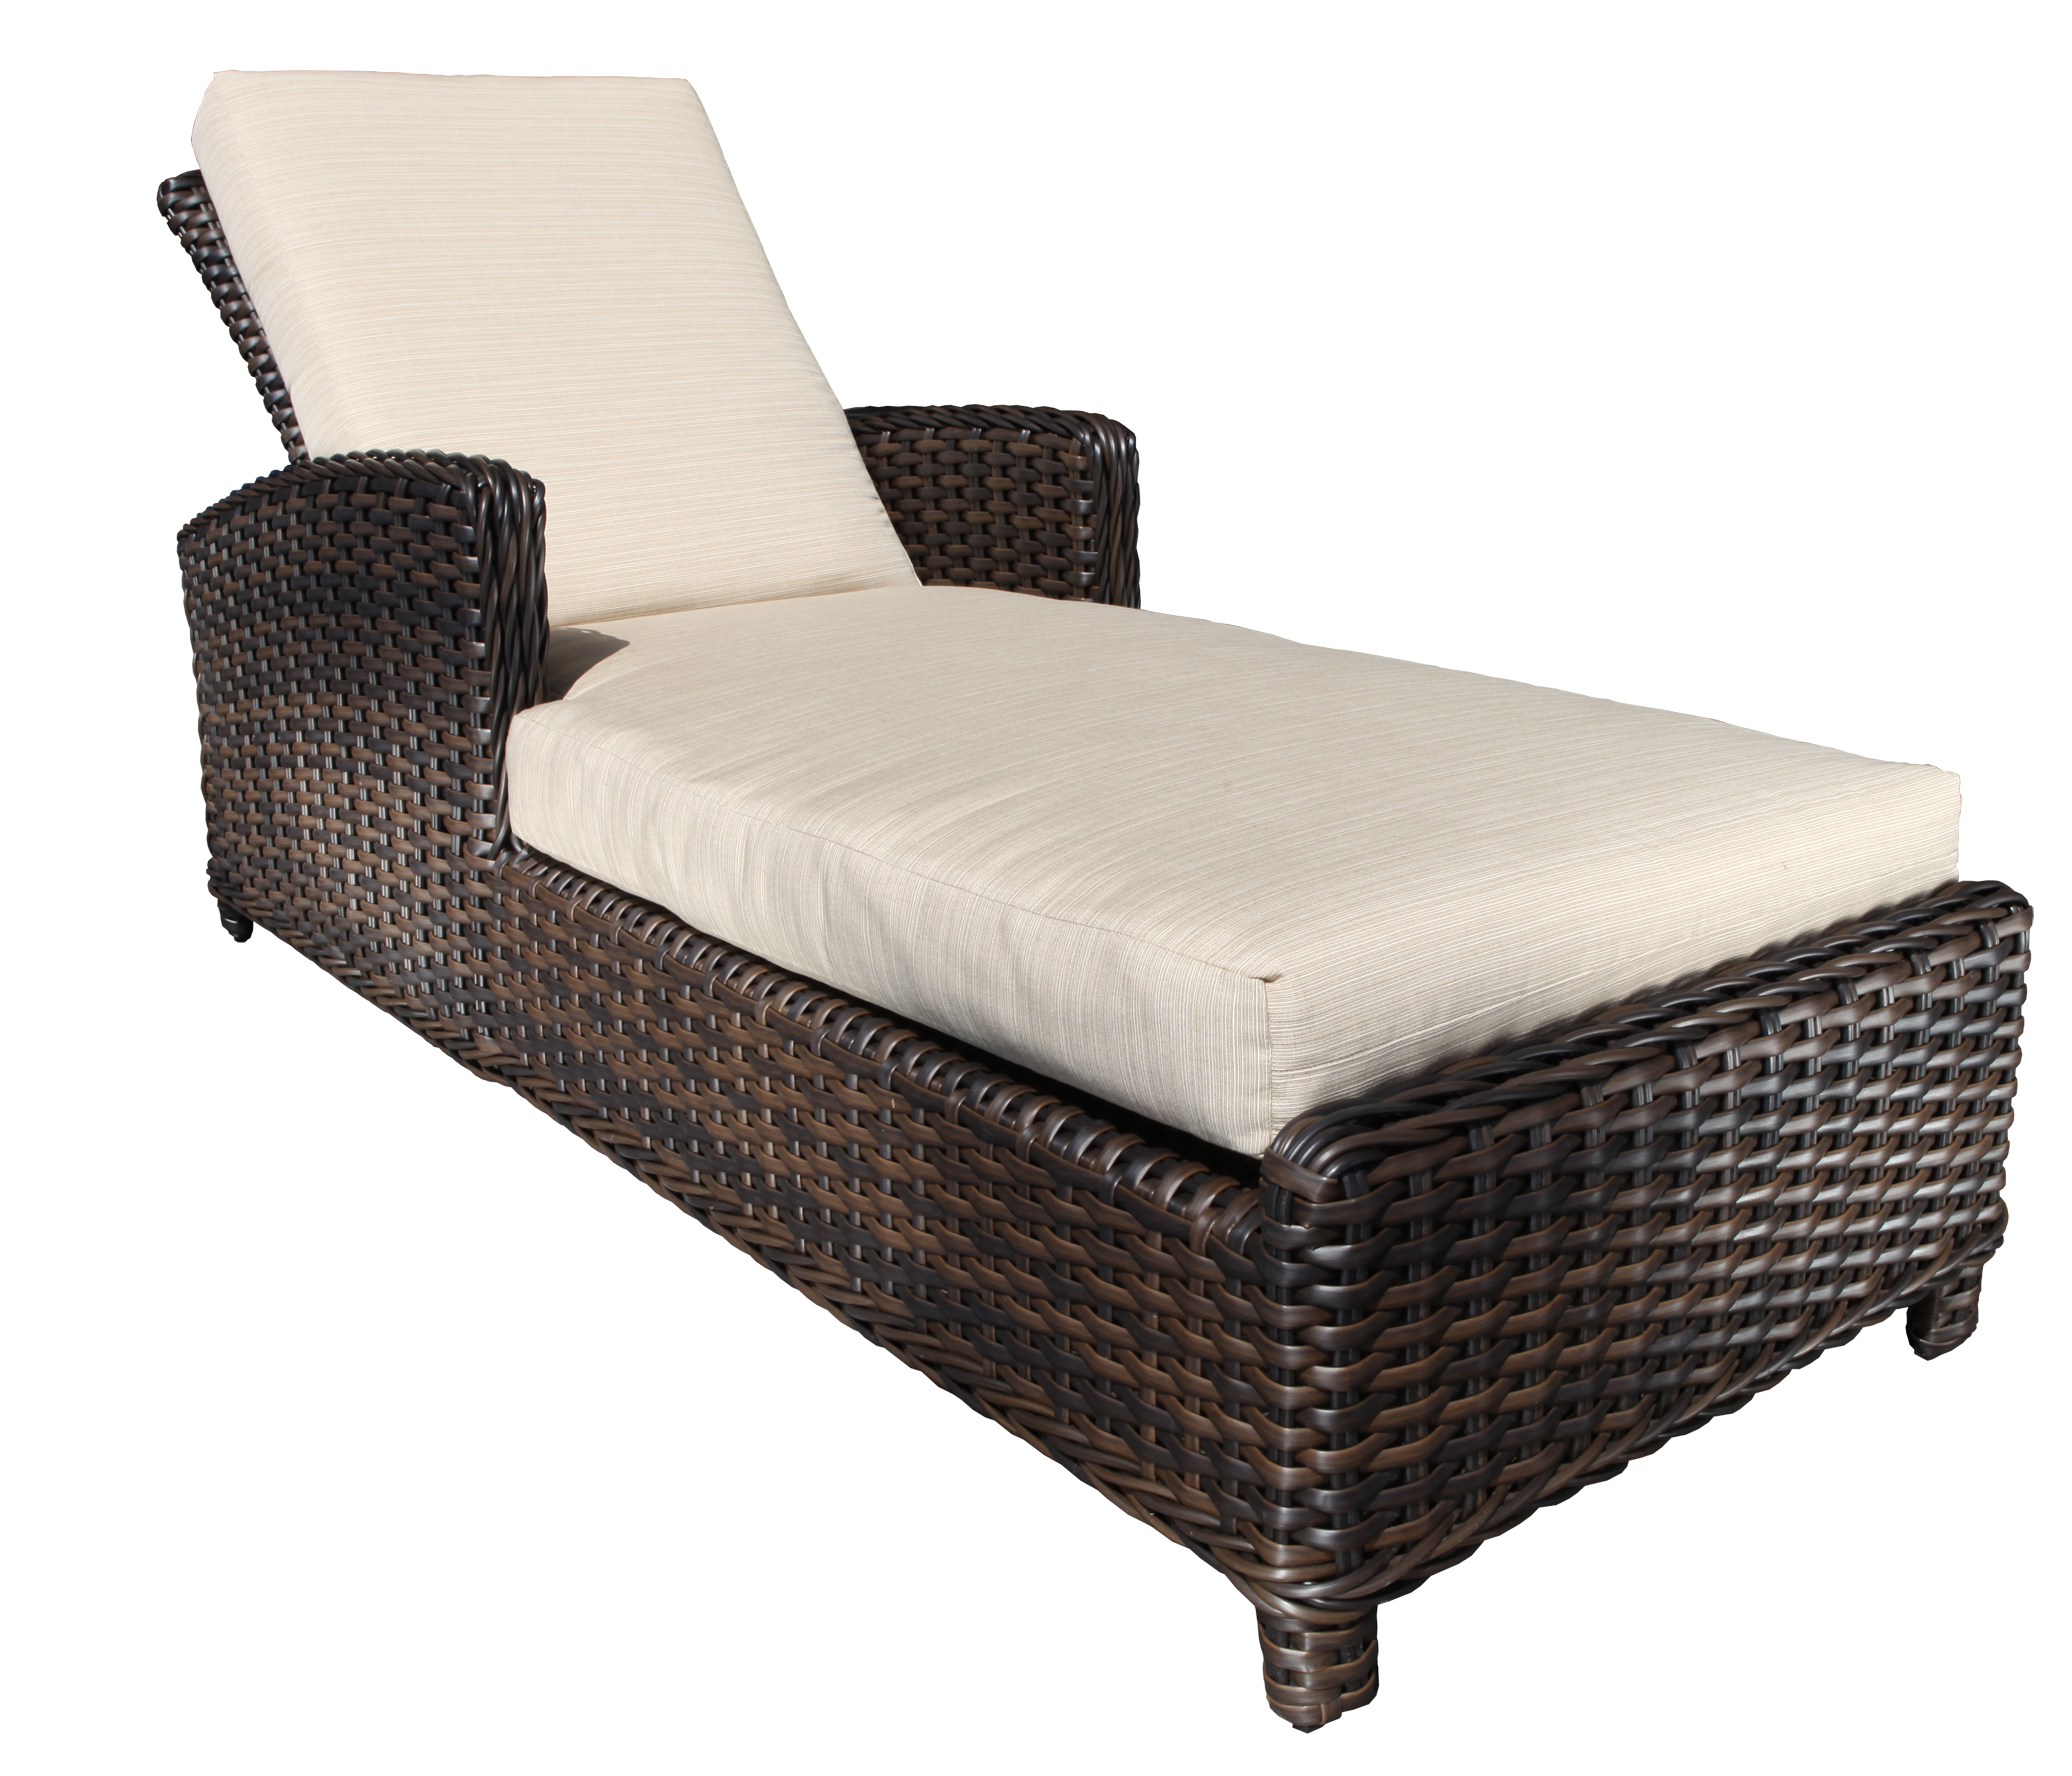 Nevada Wicker Deep Seating Chaise Lounge Patio At Sun